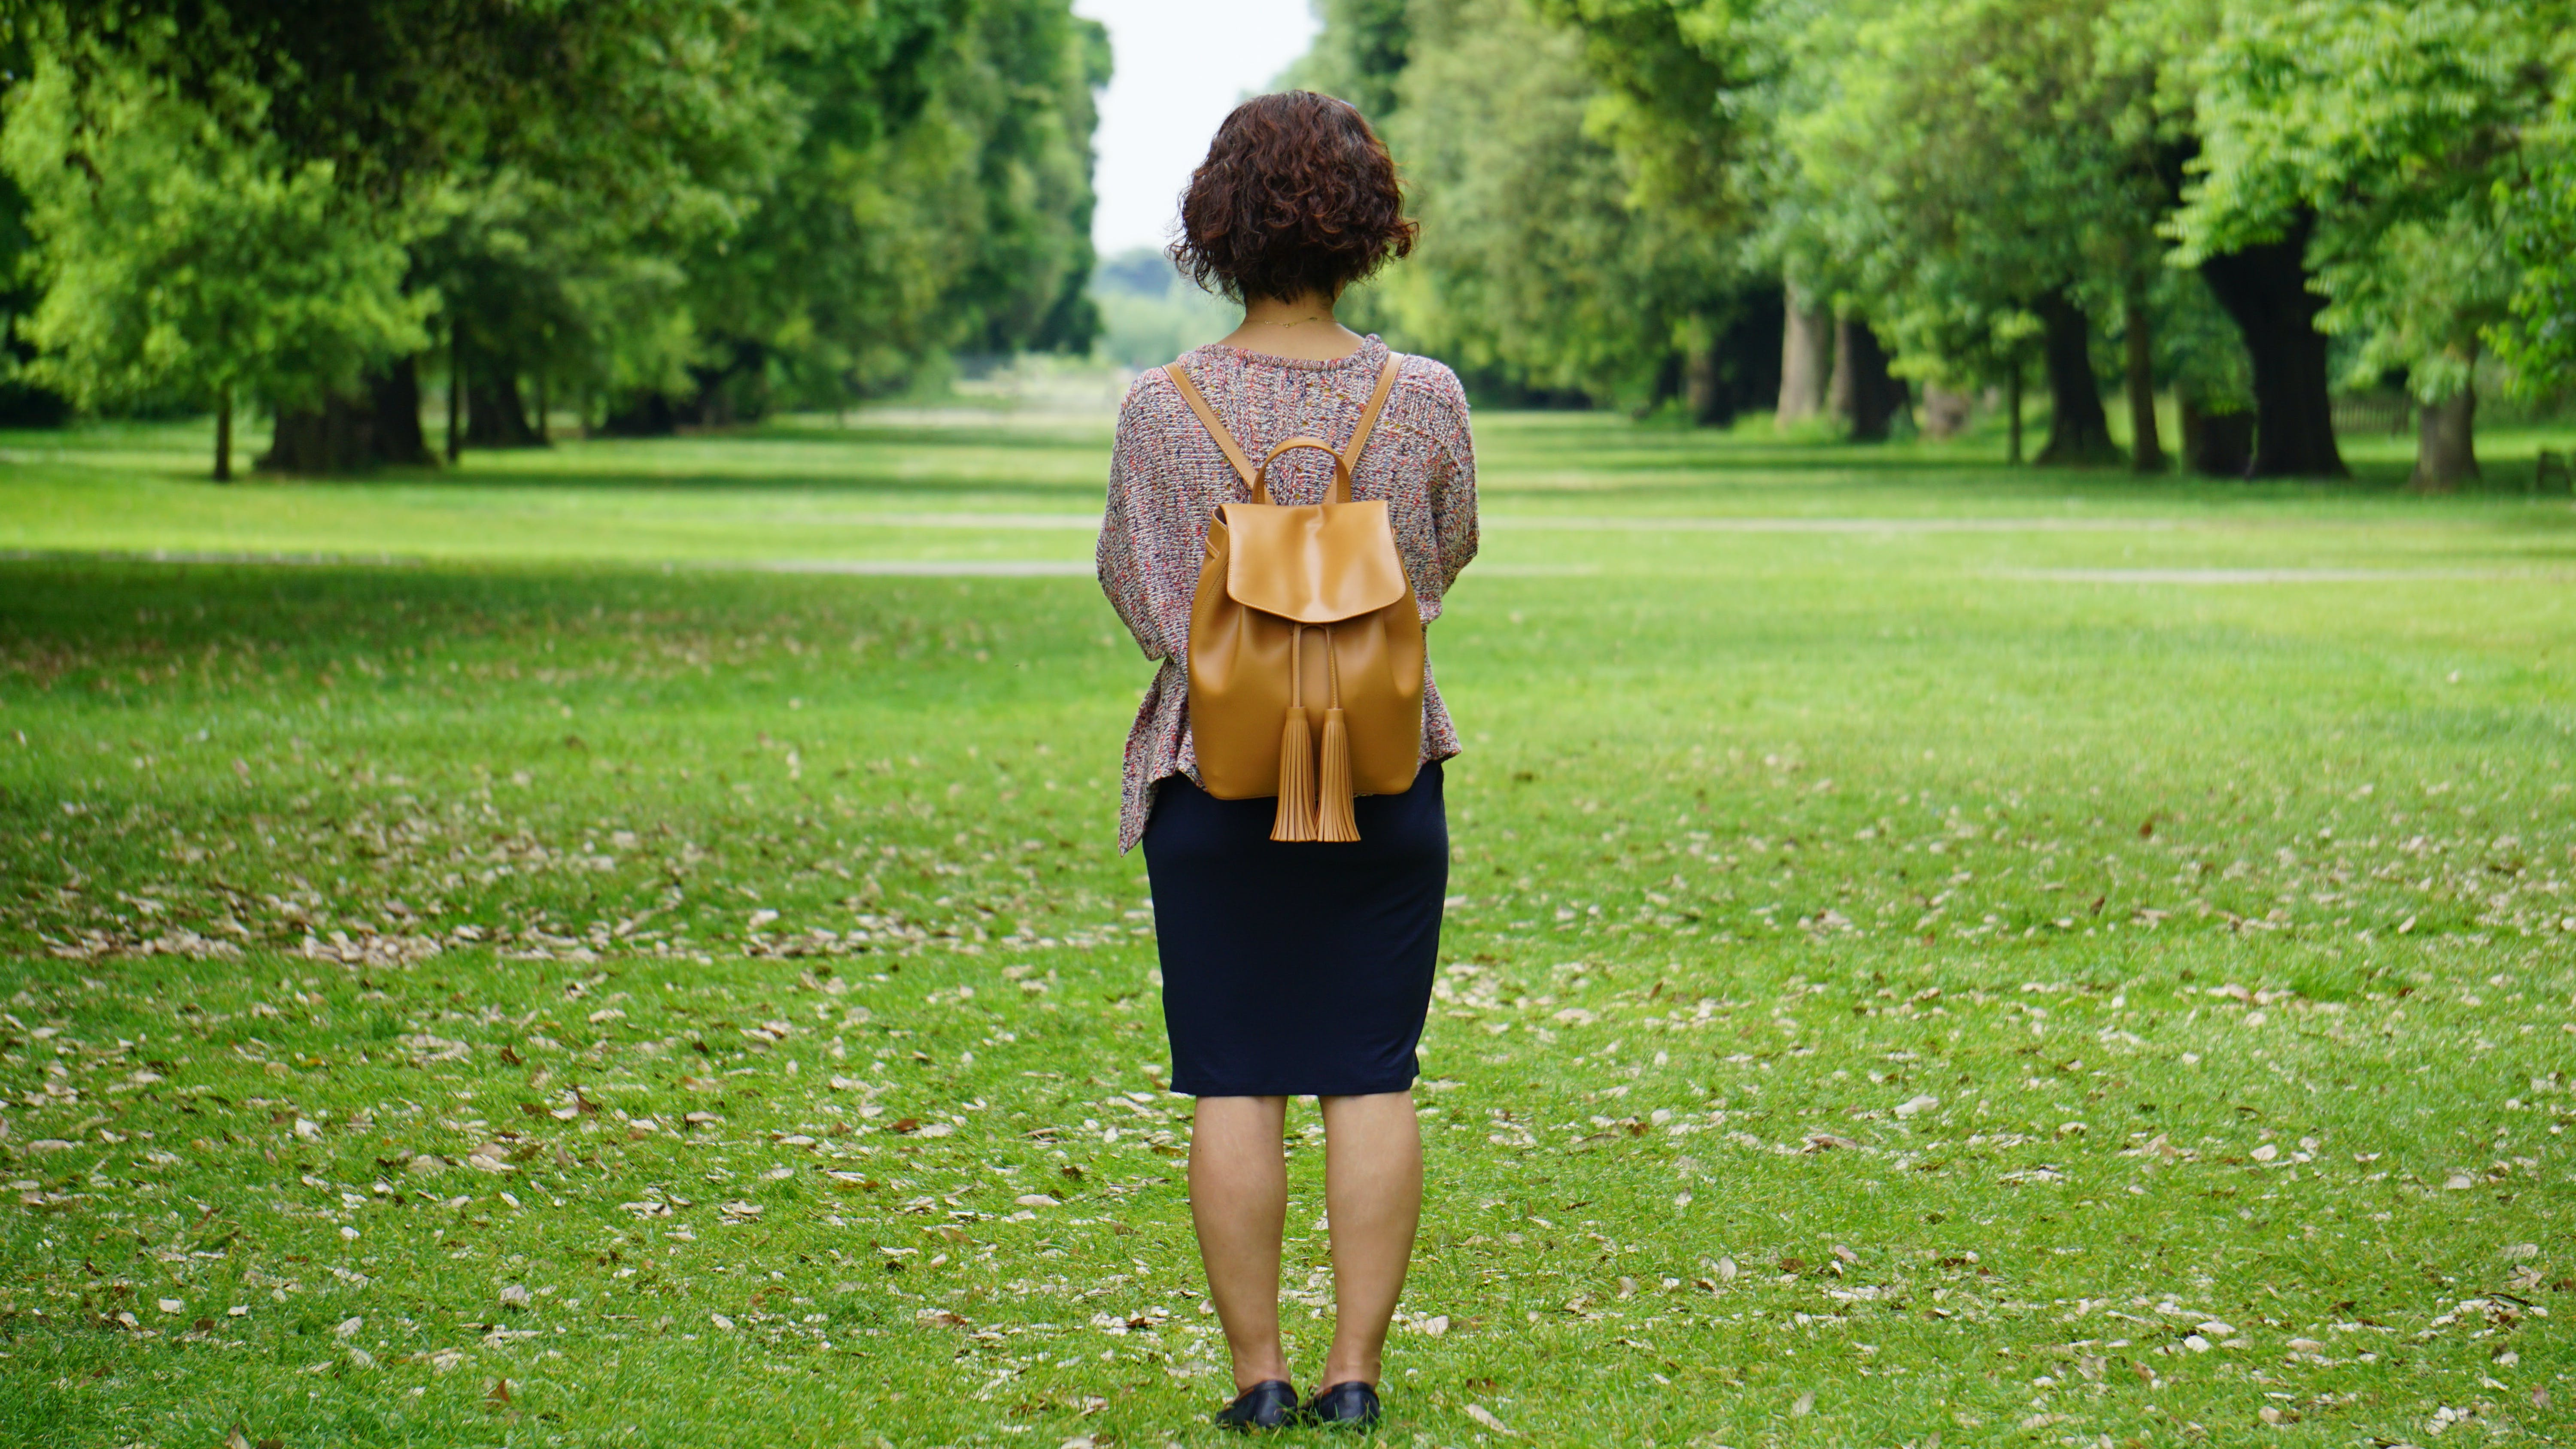 Woman Standing on Green Grass Lawn